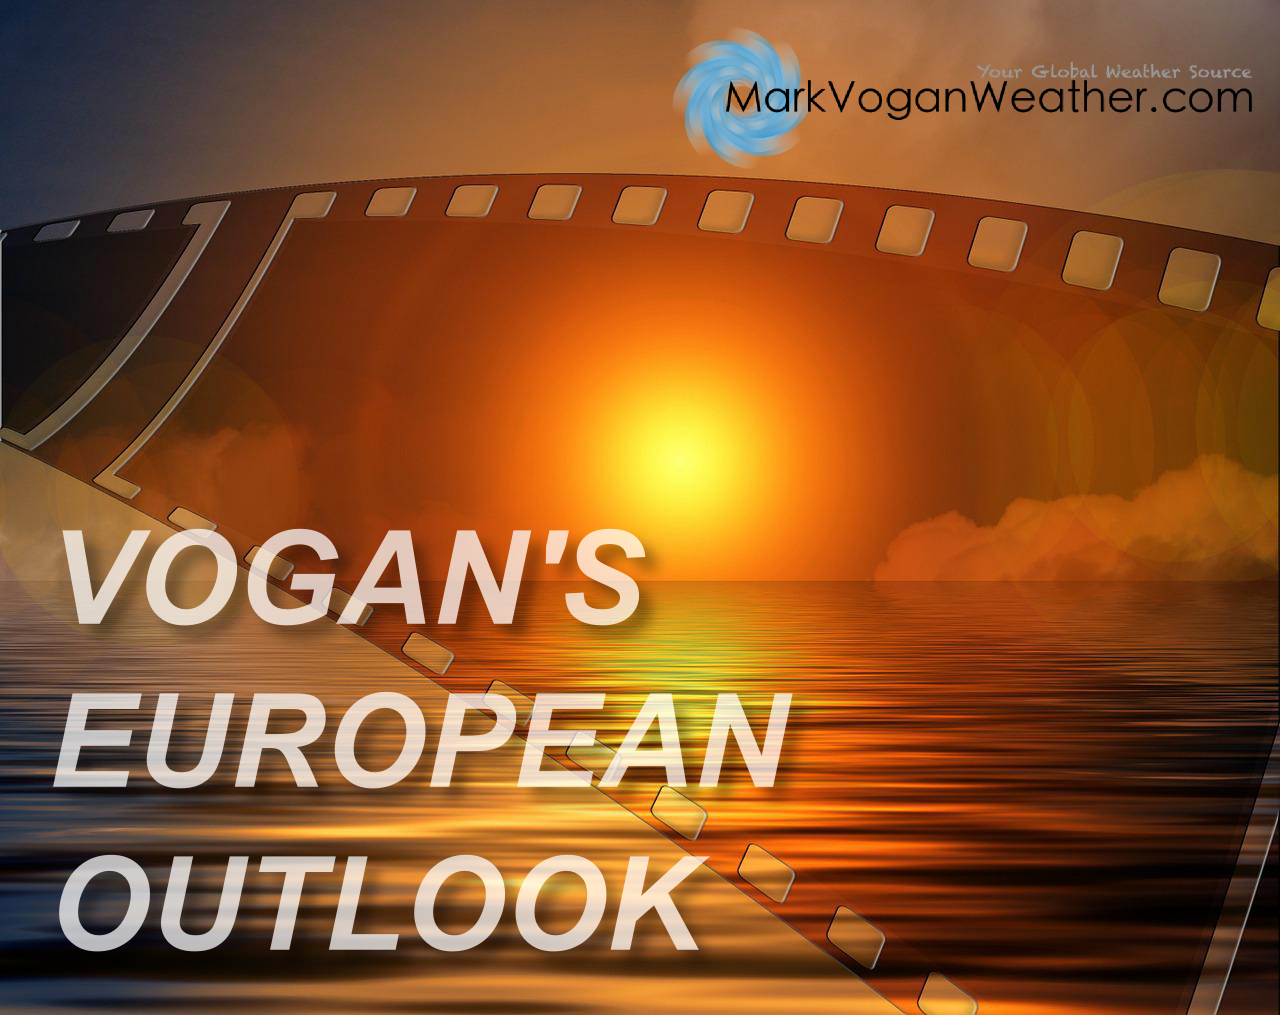 SAT 13 SEP: VOGAN'S EUROPEAN (LONG RANGE) OUTLOOK